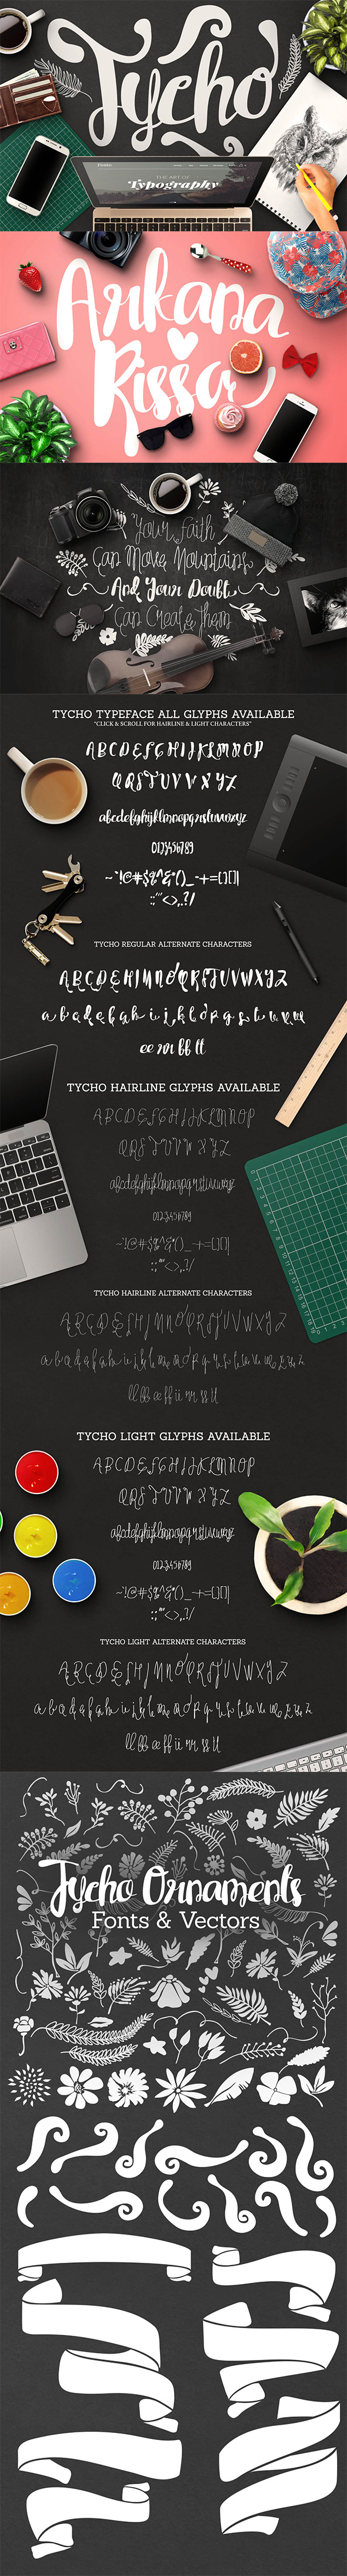 Tycho Typeface - Hand-writing Script